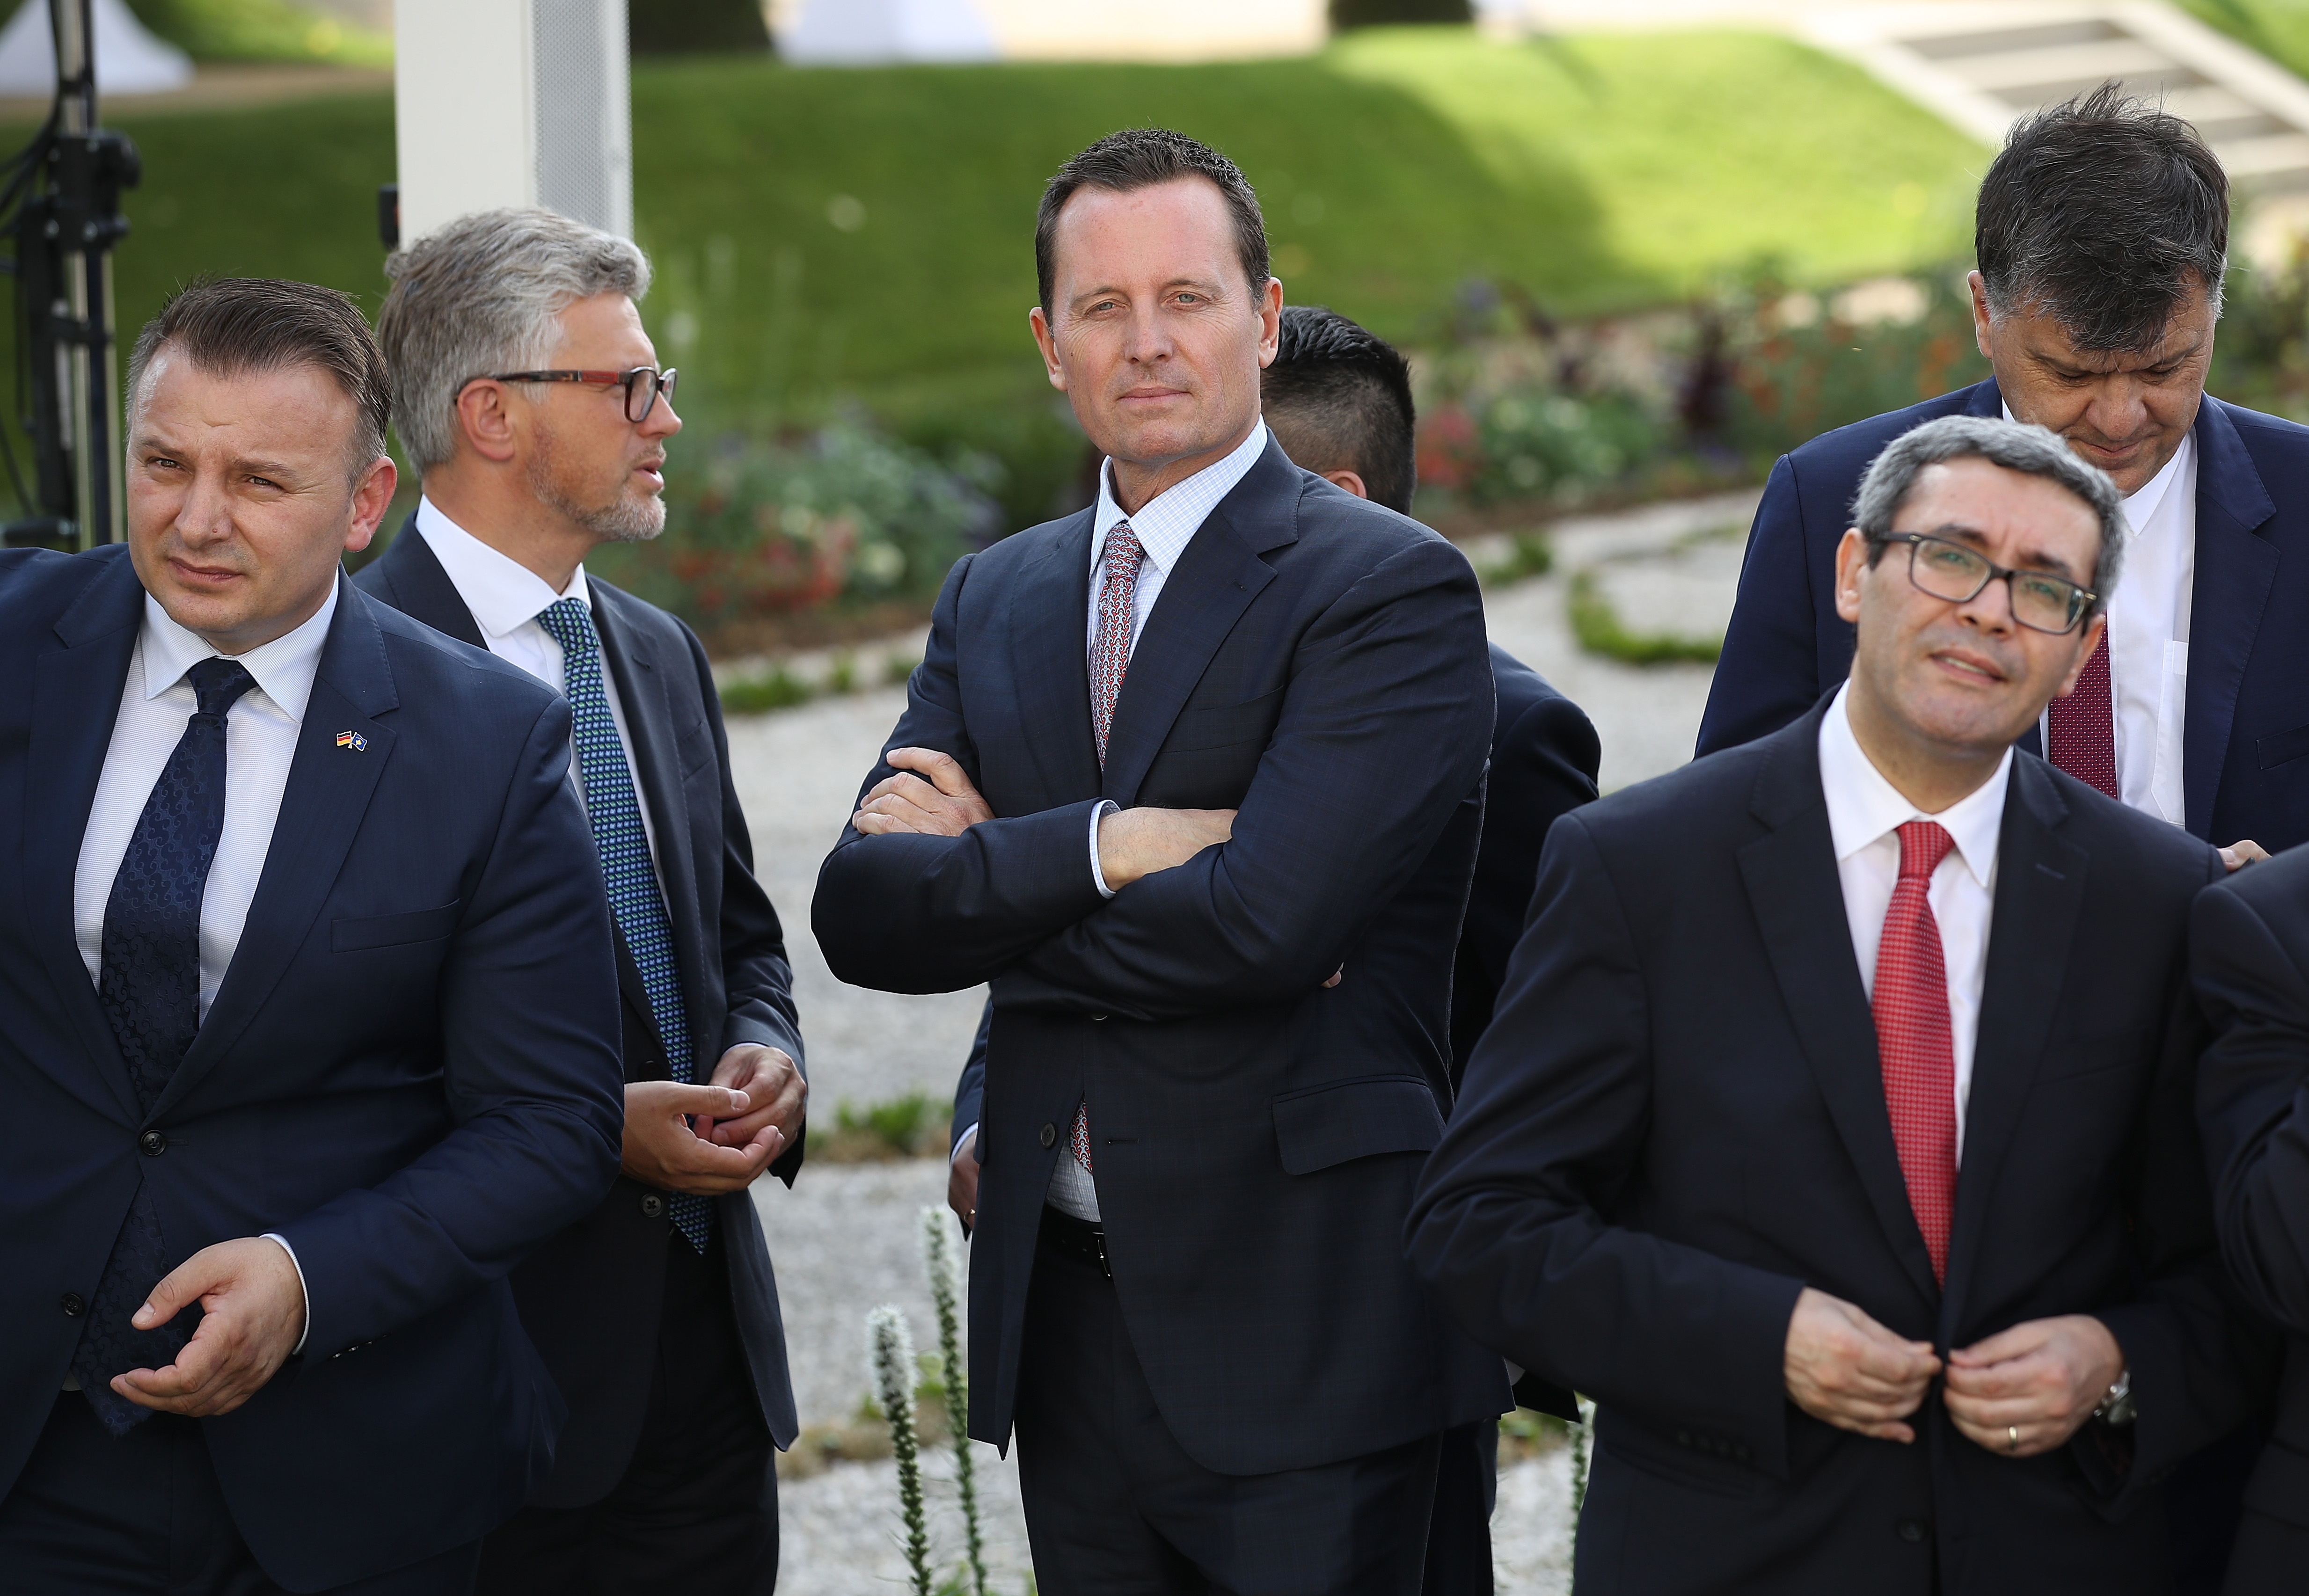 GRANSEE, GERMANY - JULY 06: U.S. Ambassador Richard Grenell (C) attends a reception for the internaitonal diplomatic corps hosted by German Chancellor Angela Merkel at Schloss Meseberg palace on July 6, 2018 near Gransee, Germany. Grenell, who was appointed ambassador by U.S. President Donald Trump, recently met with German auto executives to propose a cancelleation of tariffs on cars by both the U.S. and Germany. (Photo by Sean Gallup/Getty Images)